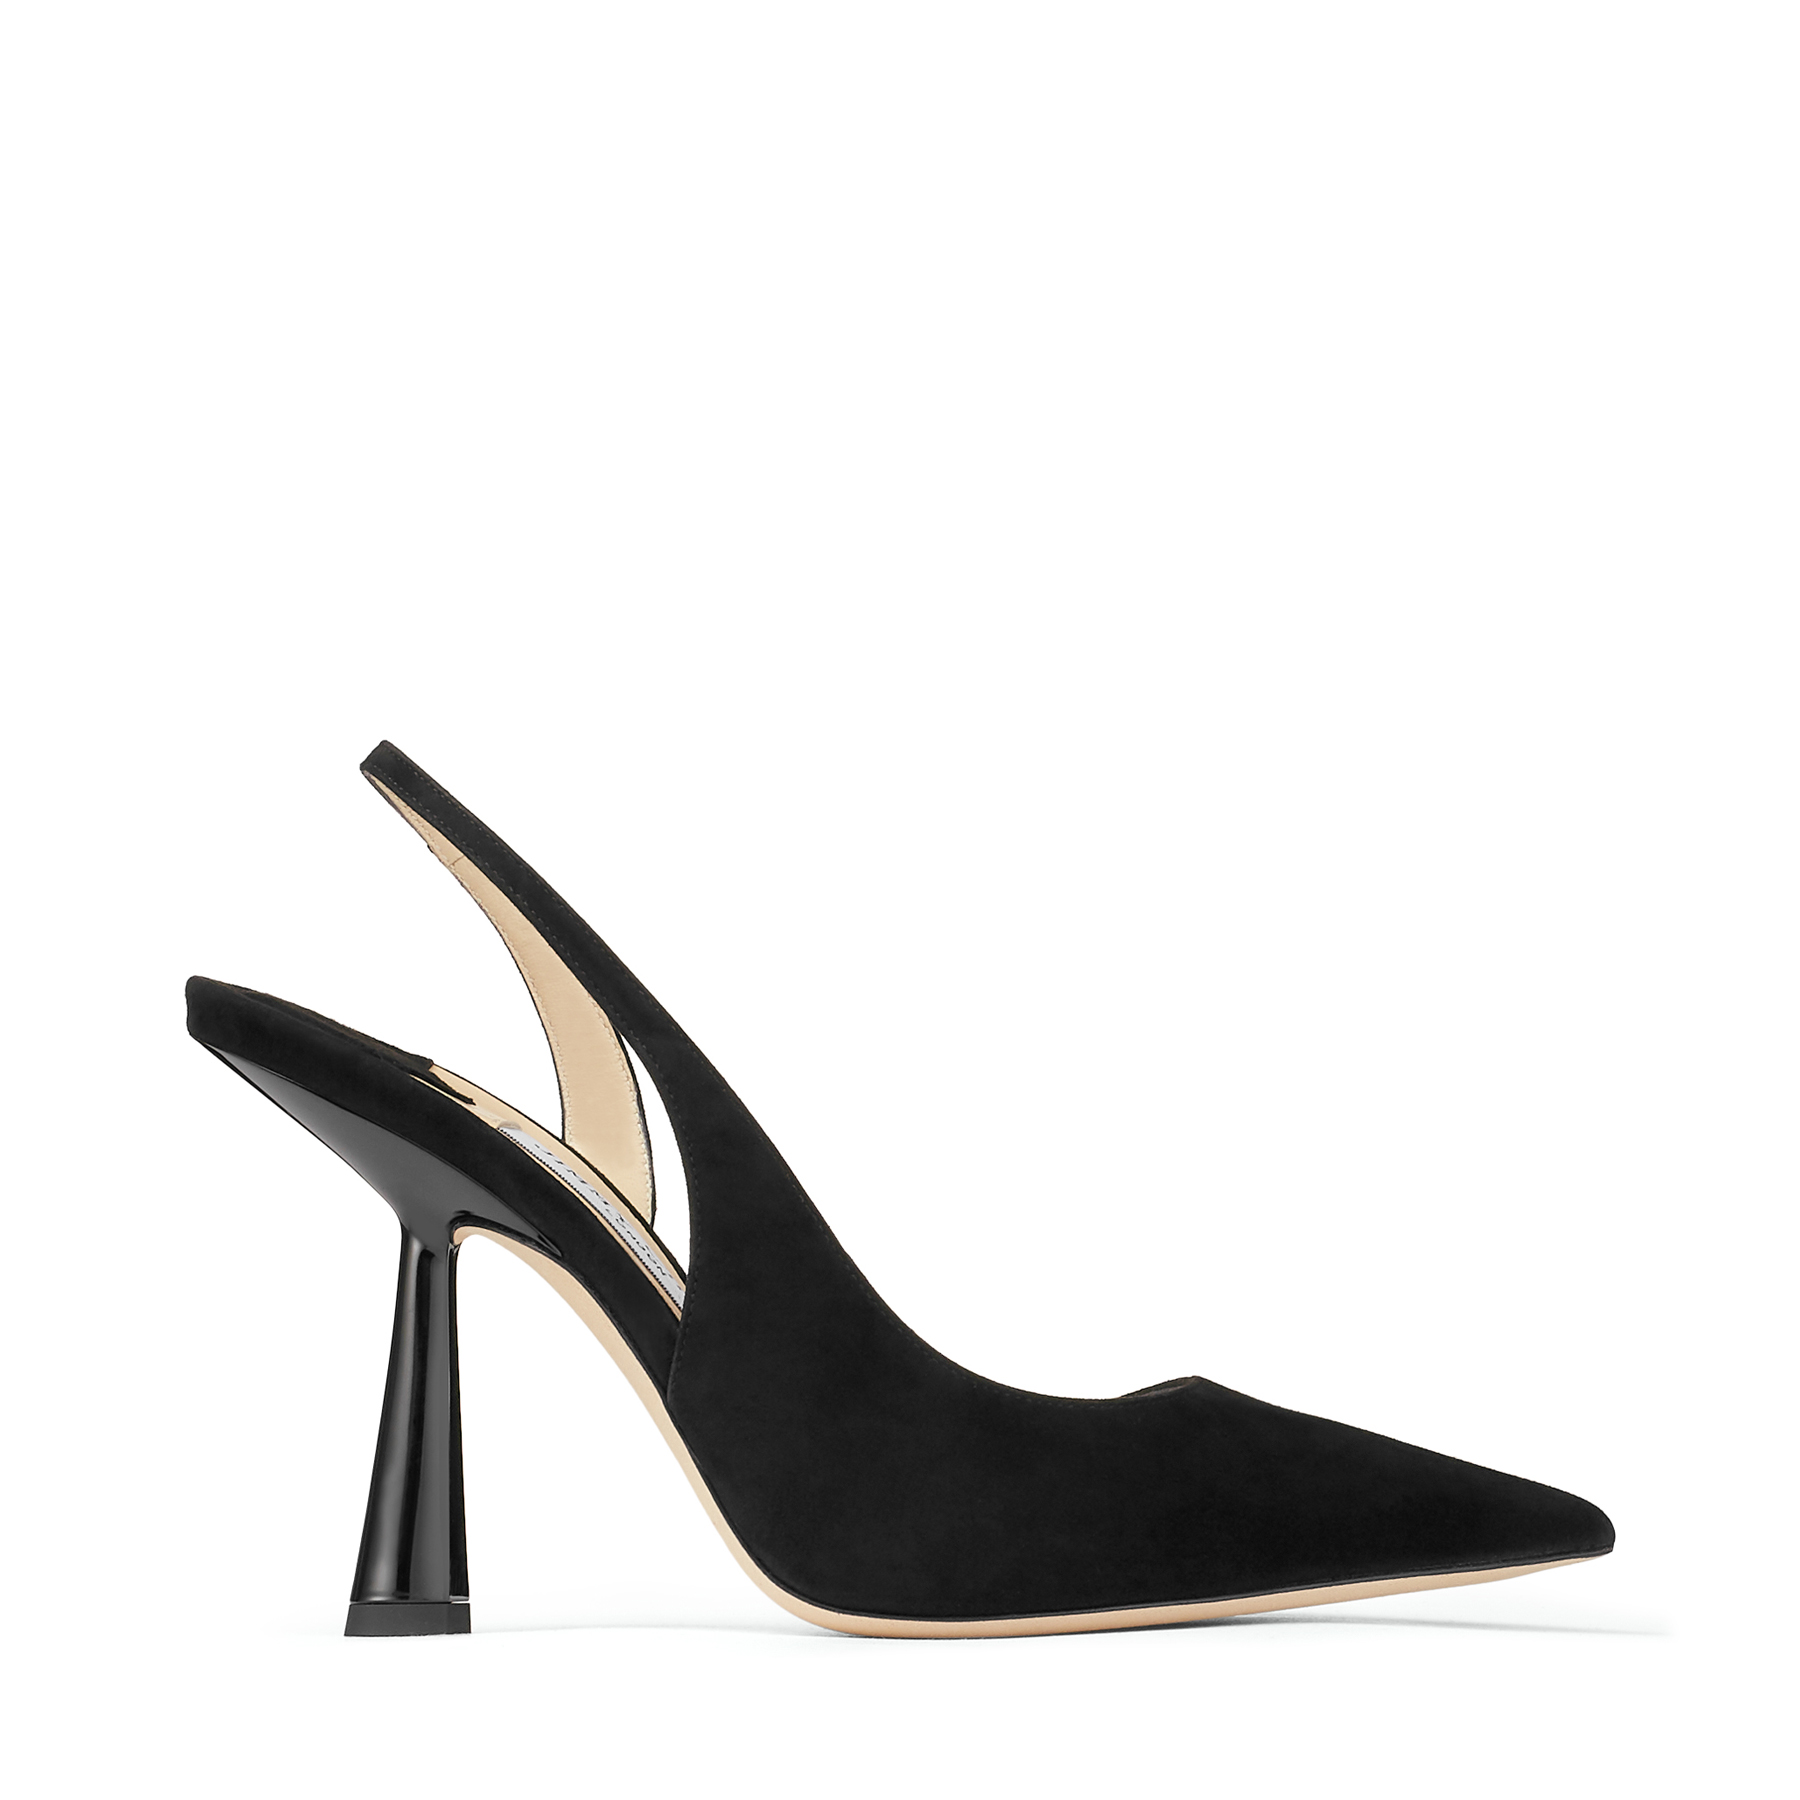 5b01dfcb2cd83 JIMMY CHOO - Official Online Boutique   Shop Luxury Shoes, Bags and  Accessories